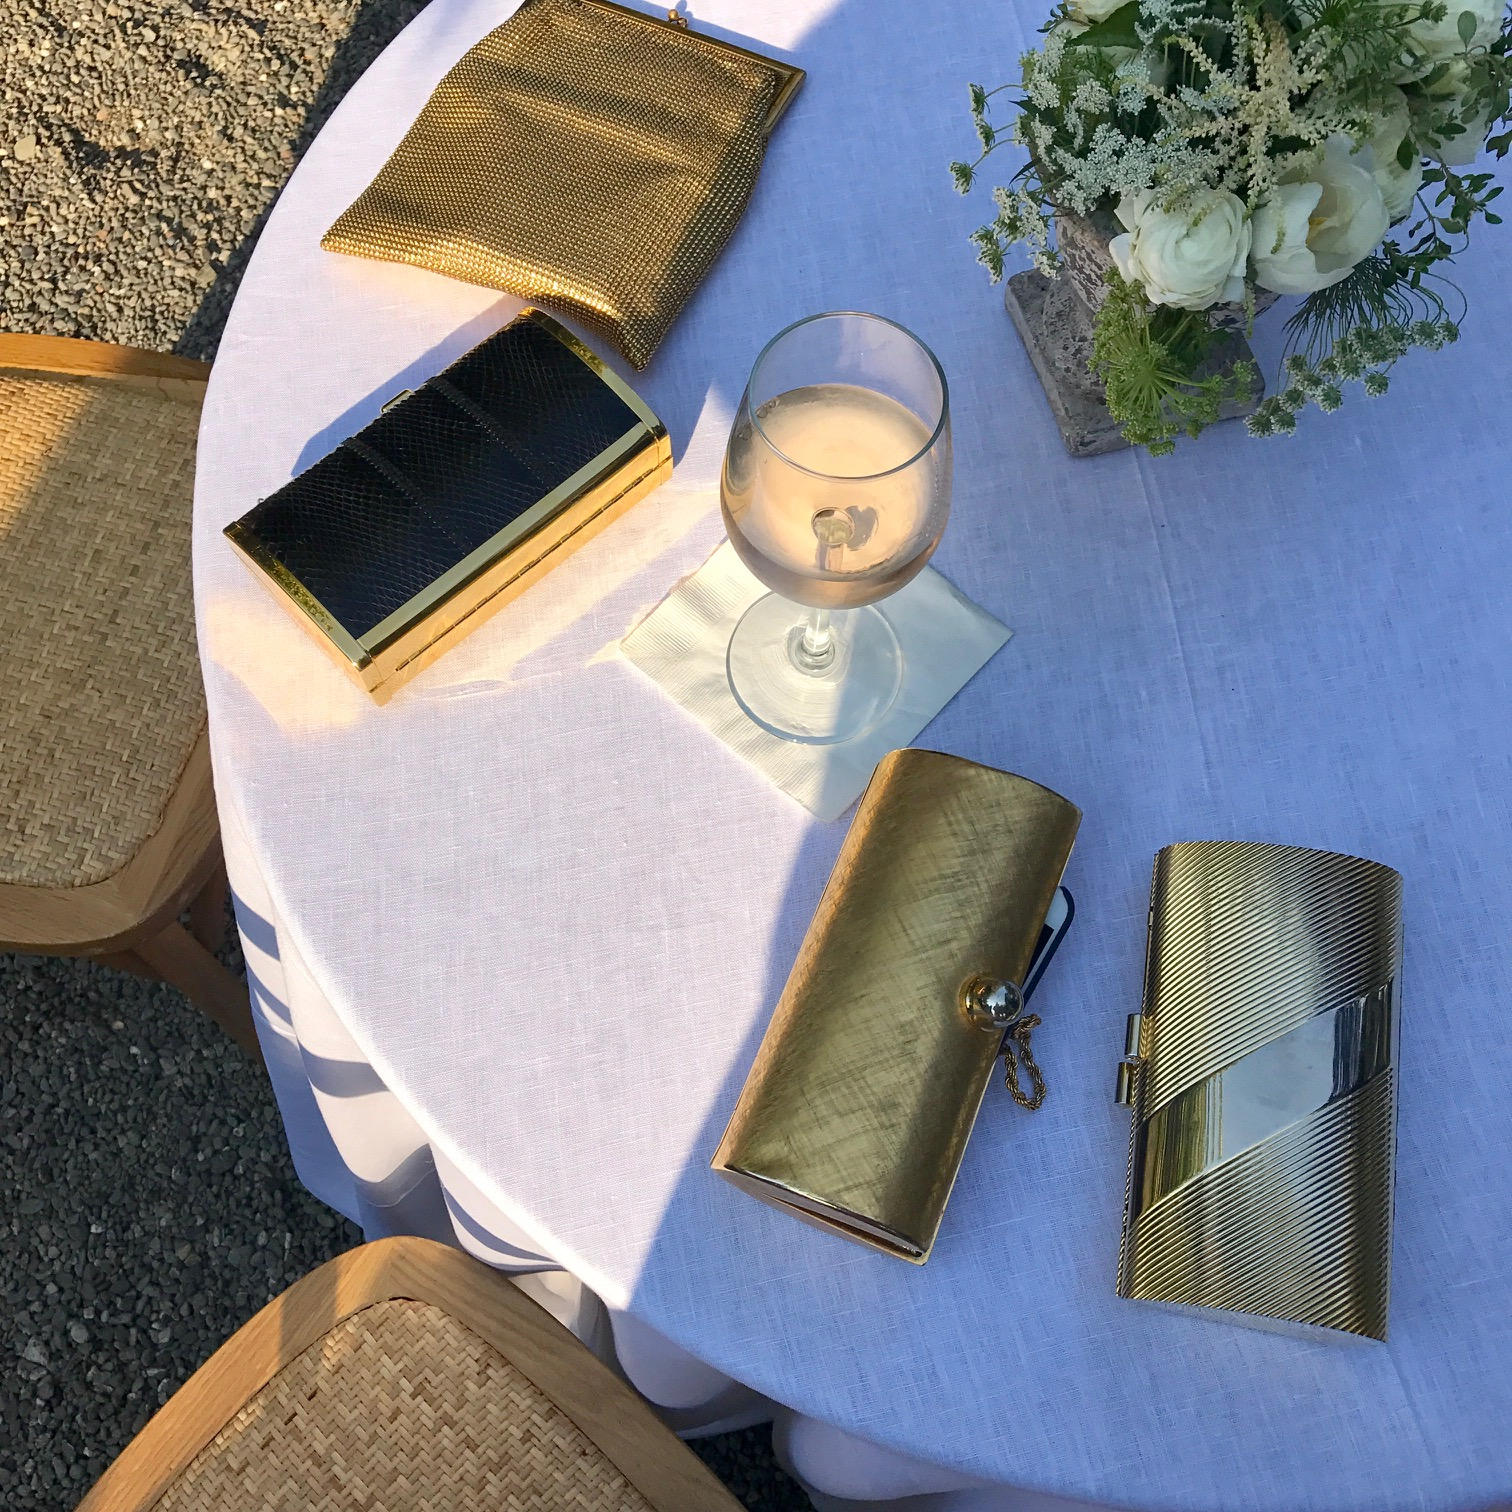 Gold clutches accompany a glass of rosé during cocktail hour in the garden.